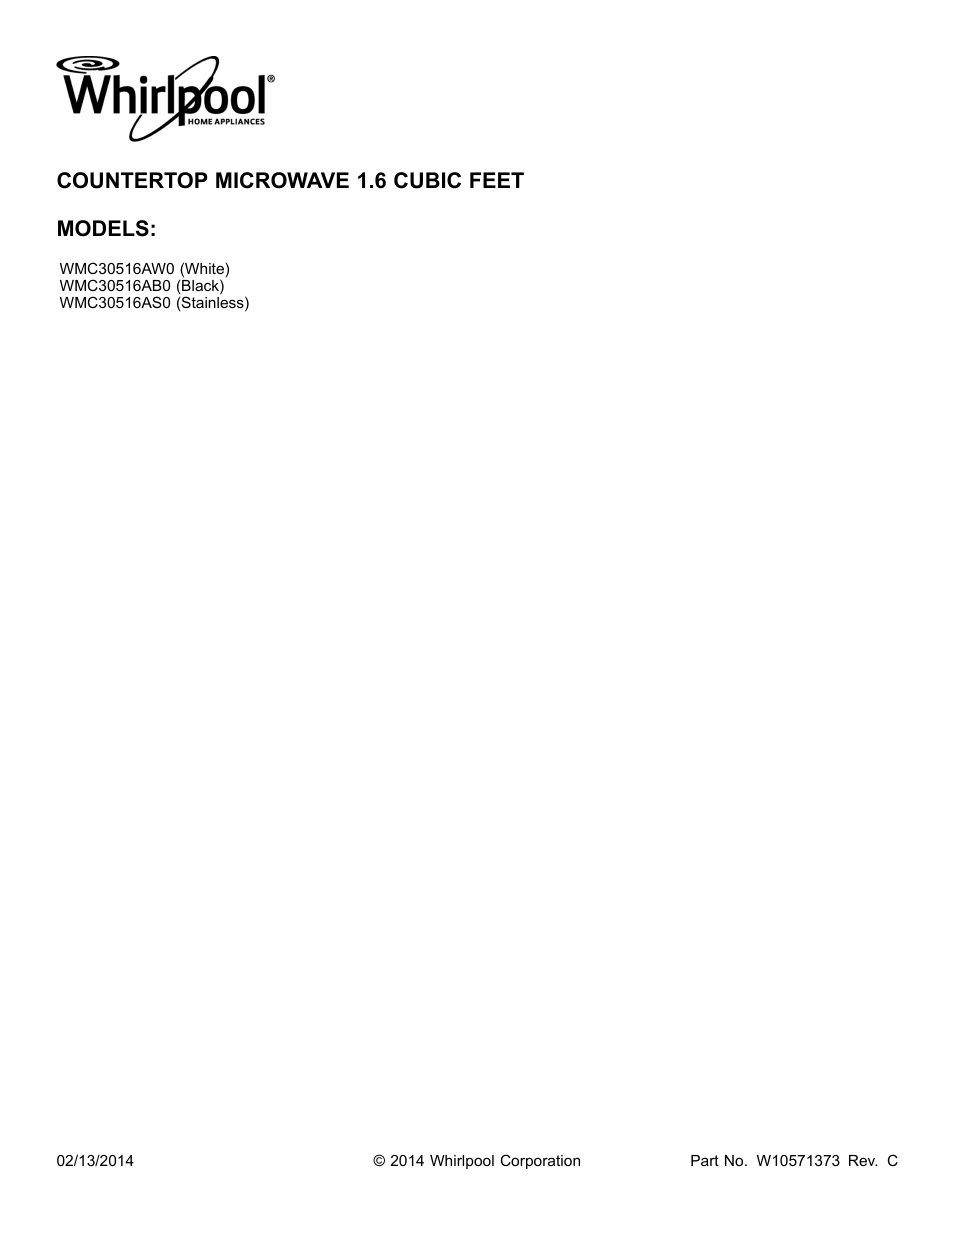 Whirlpool Wmc30516as User Manual 3 Pages